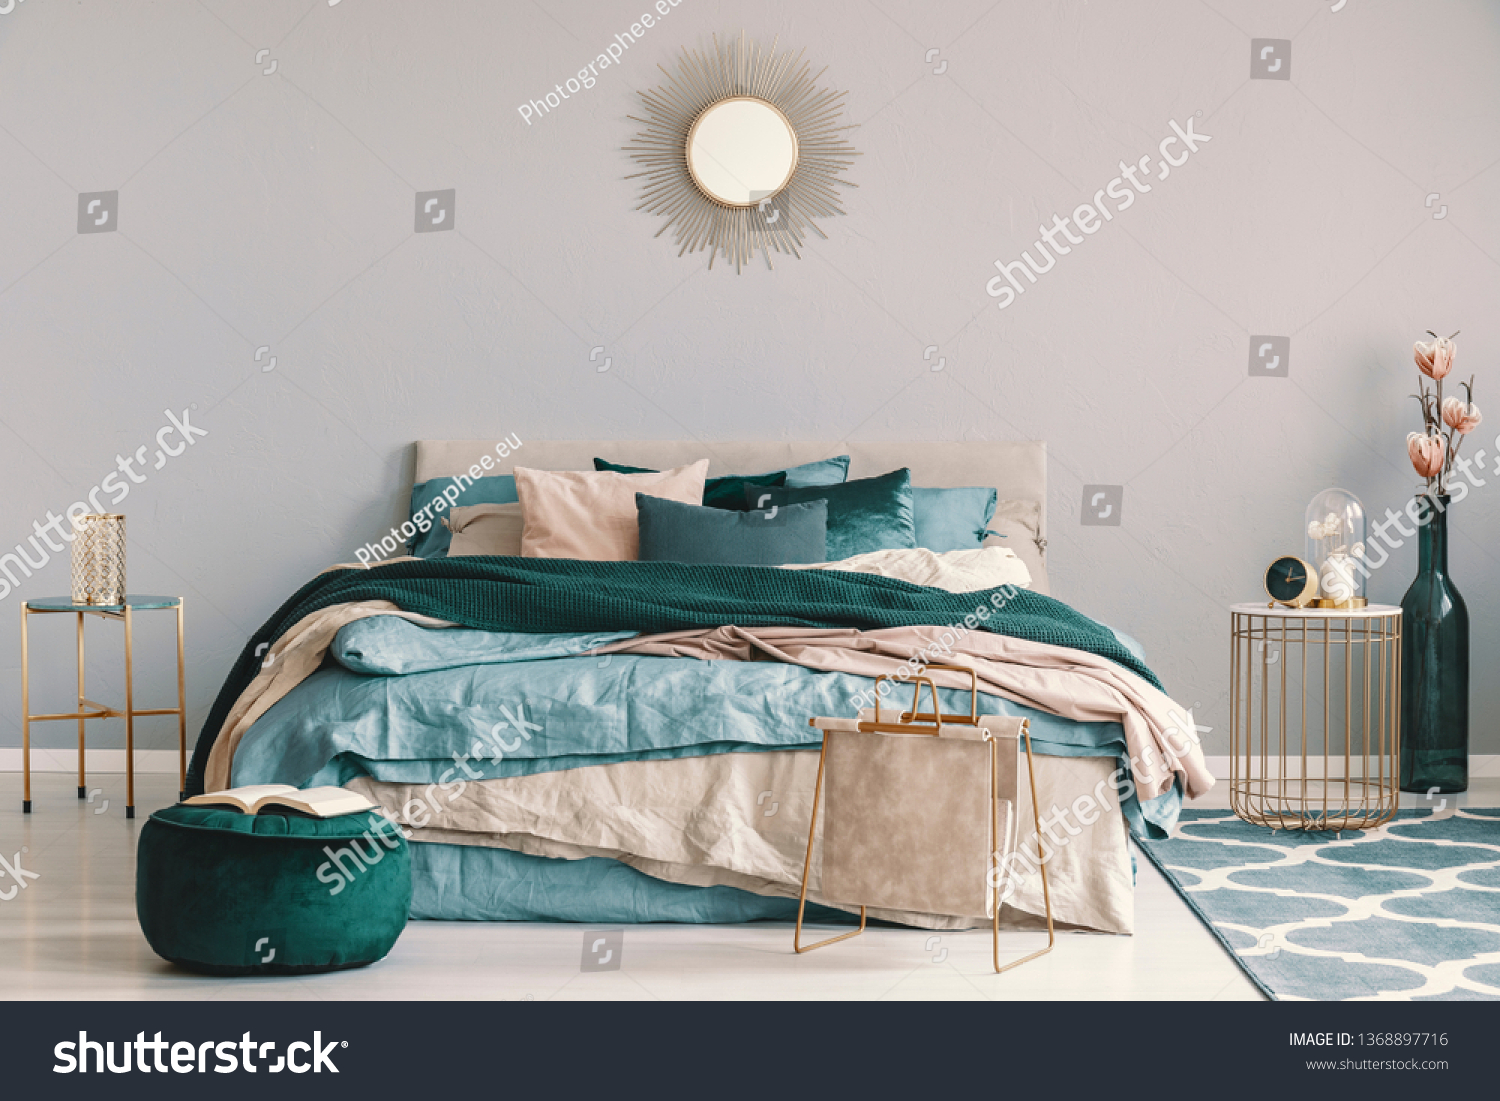 Blue Beige Emerald Green Bedding On Stock Photo Edit Now 1368897716